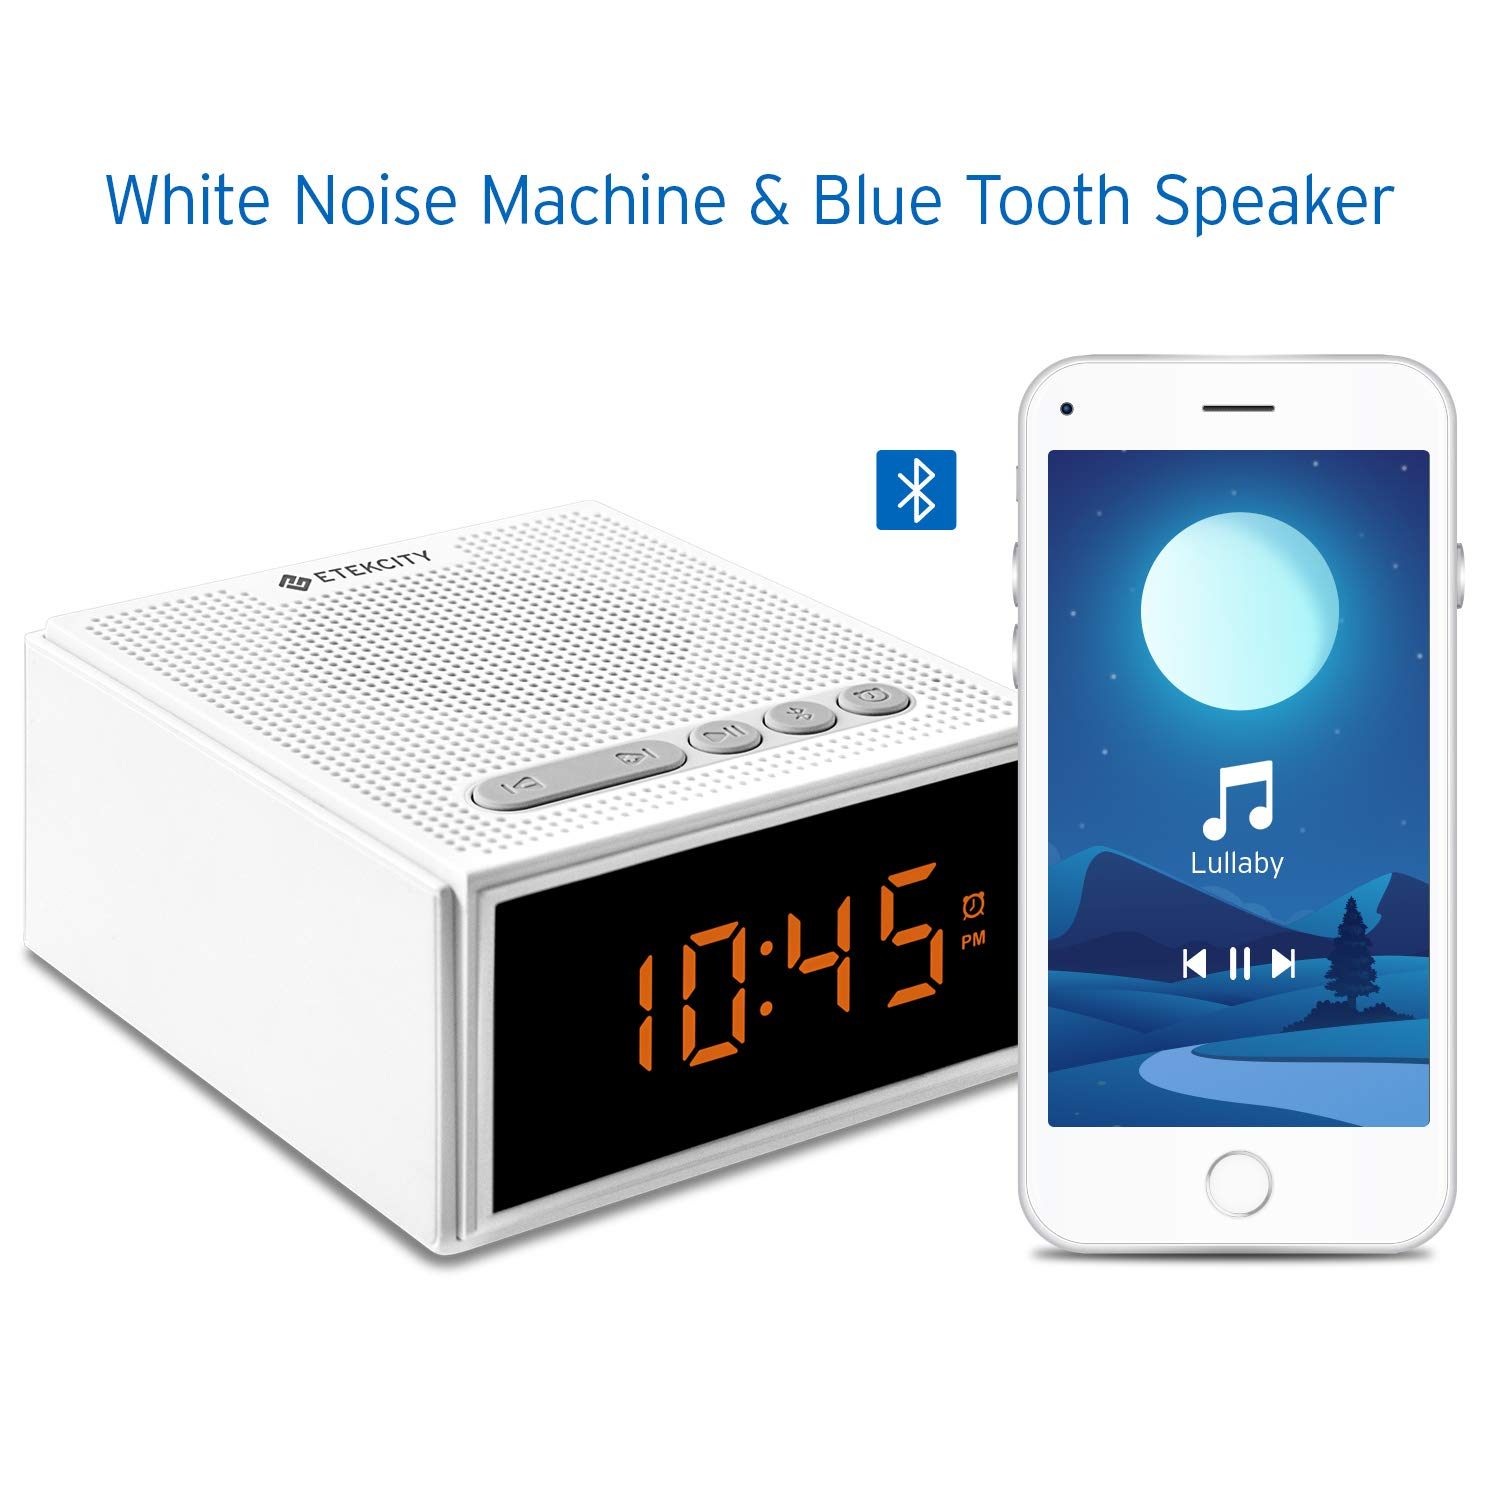 White Noise Machine with Bluetooth Speaker LCD Digital Clock, Timer & Memory Function, Portable Rechargeable Sound Machine for Sleeping Baby, Office Privacy, or Travel, 2 Year Warranty by Etekcity